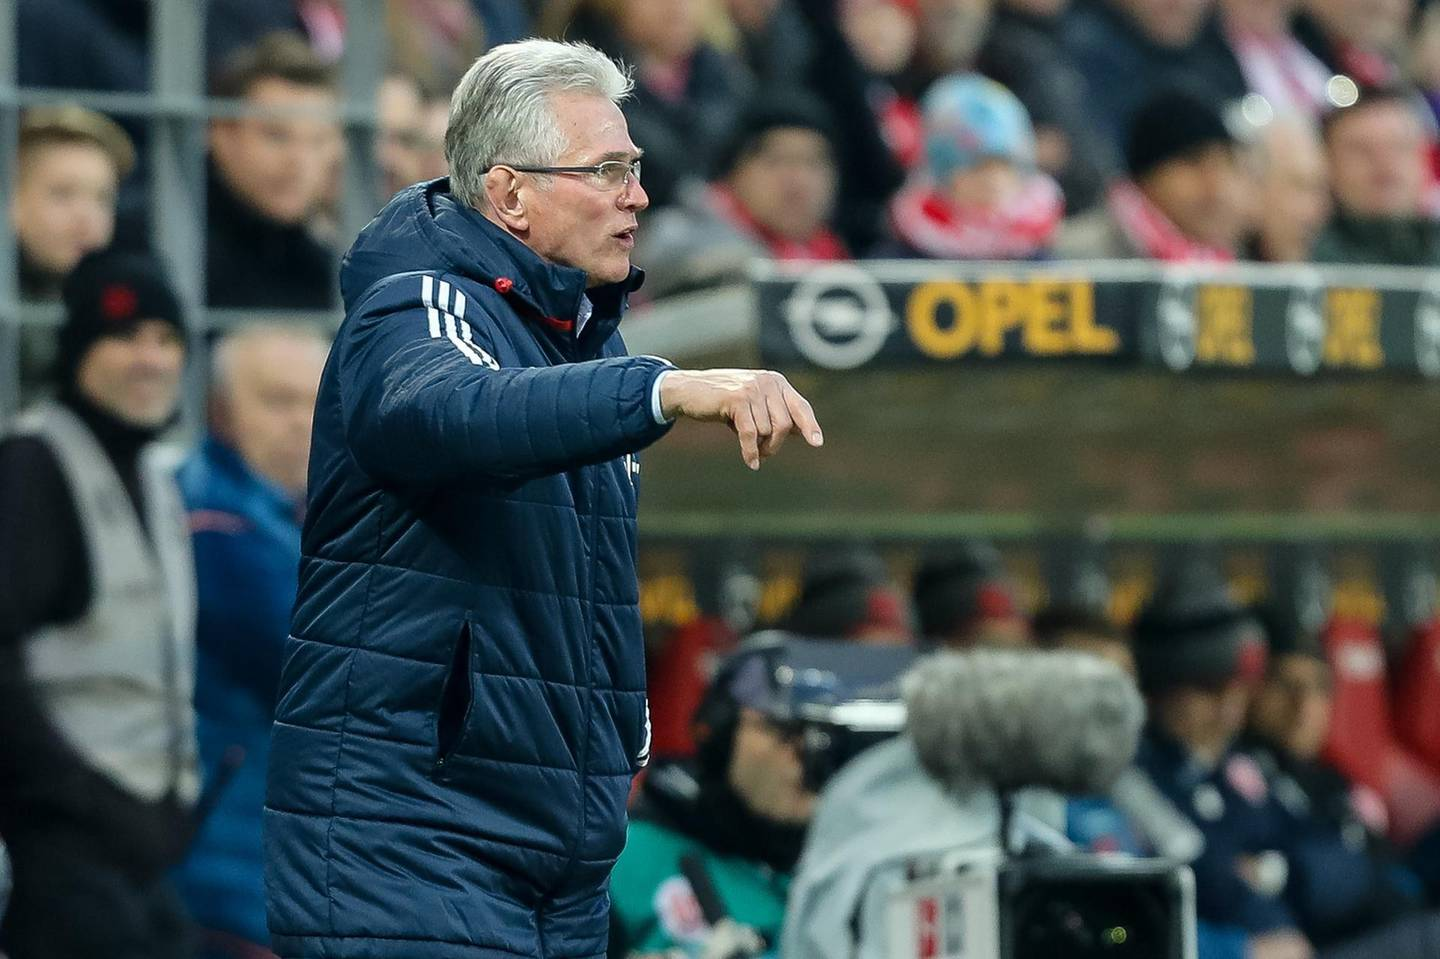 MAINZ, GERMANY - FEBRUARY 03: Head coach Jupp Heynckes of Muenchen gestures during the Bundesliga match between 1. FSV Mainz 05 and FC Bayern Muenchen at Opel Arena on February 3, 2018 in Mainz, Germany. (Photo by TF-Images/TF-Images via Getty Images)